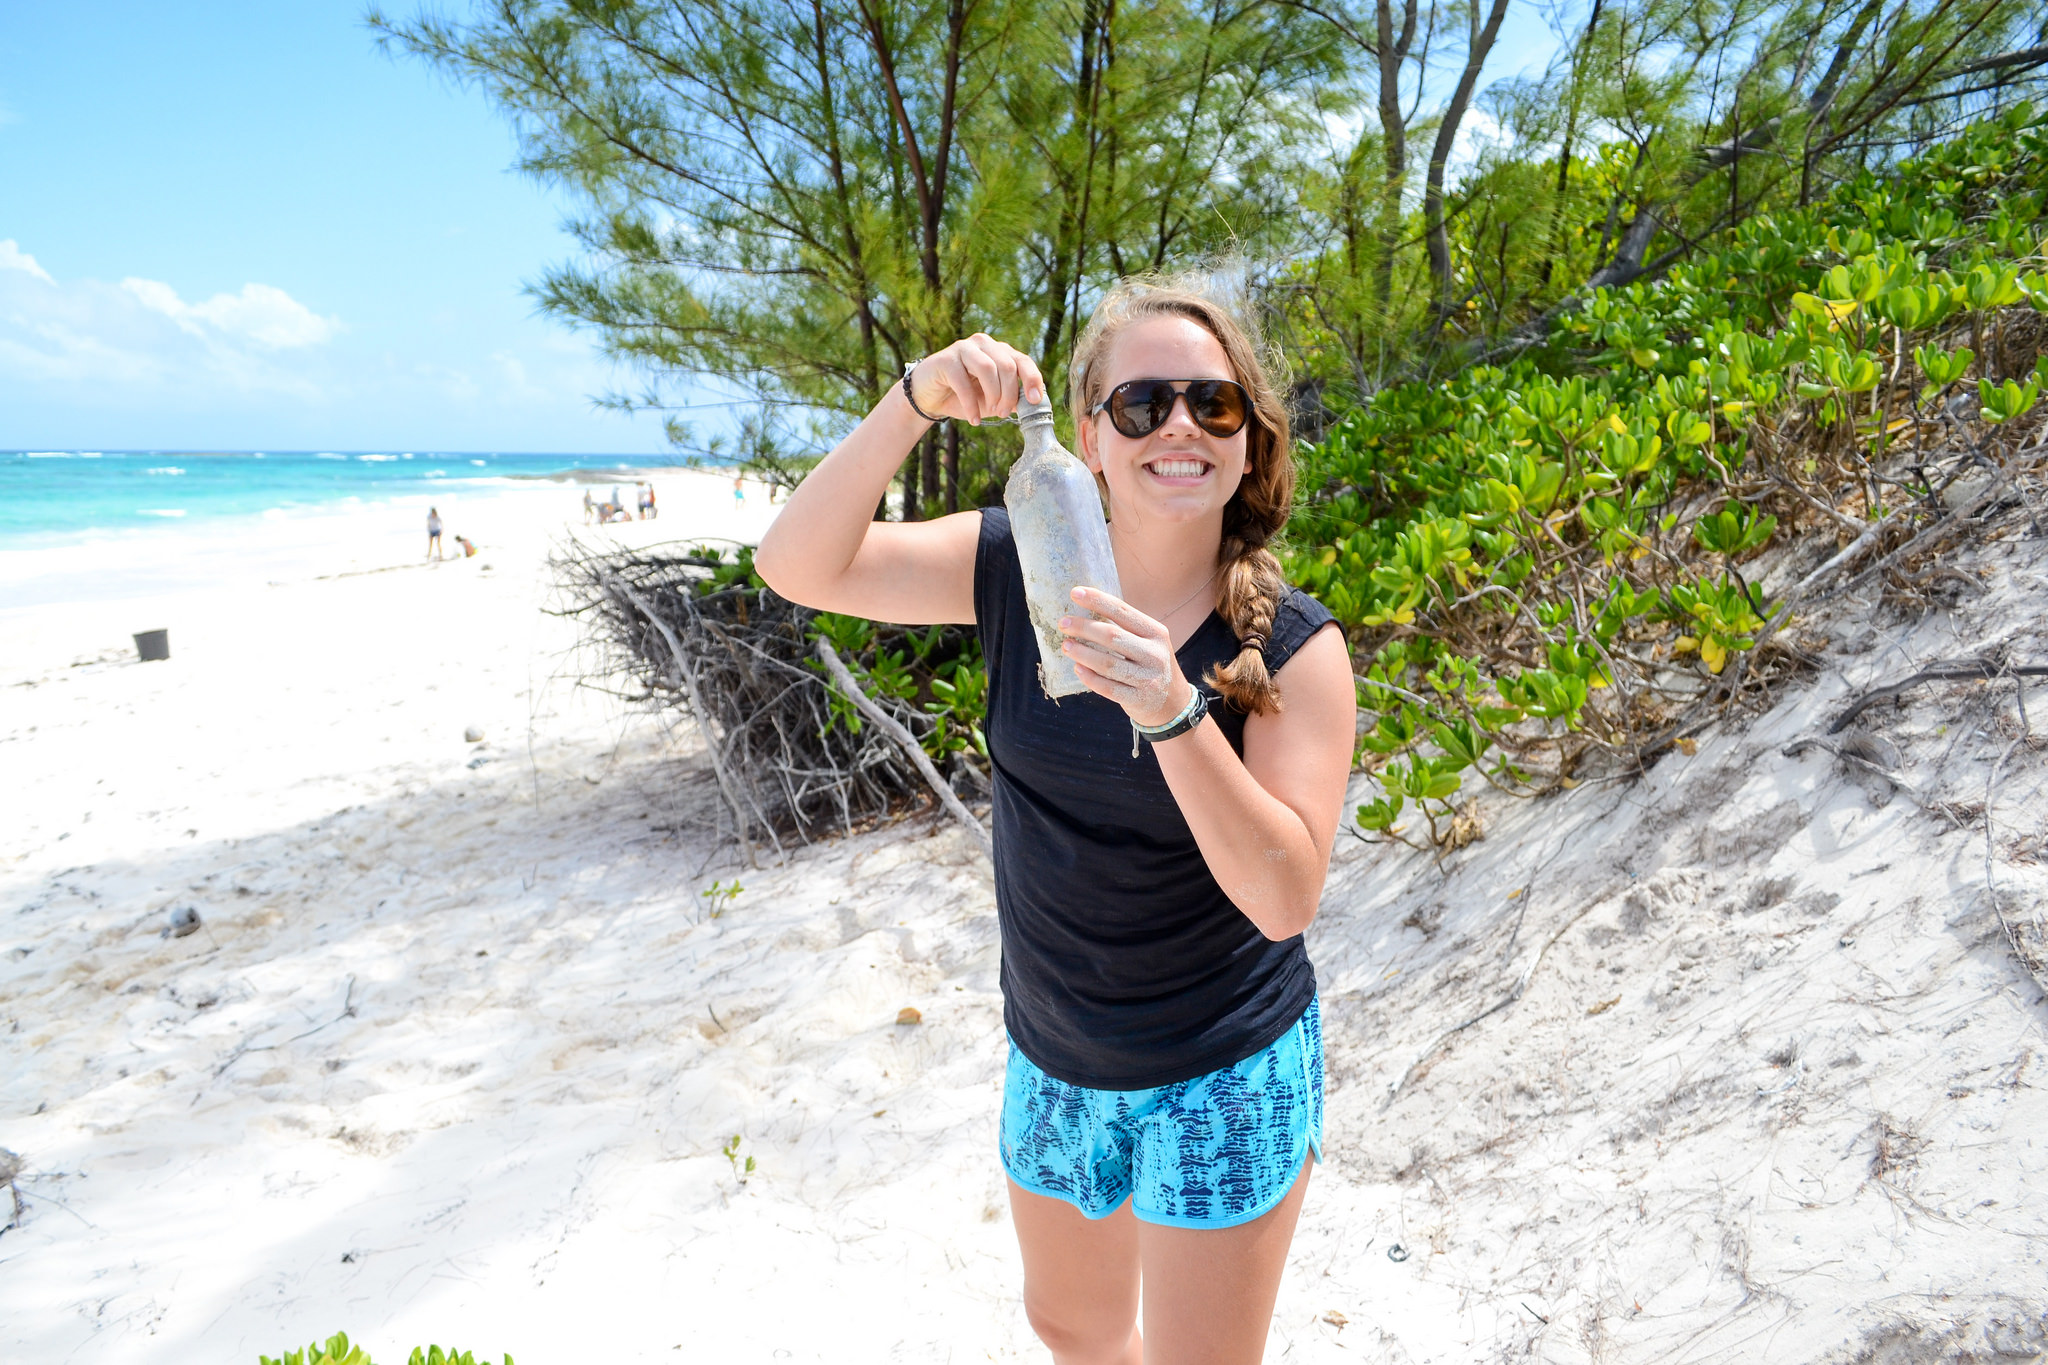 Lily picks up trash during a beach clean-up on Eleuthera